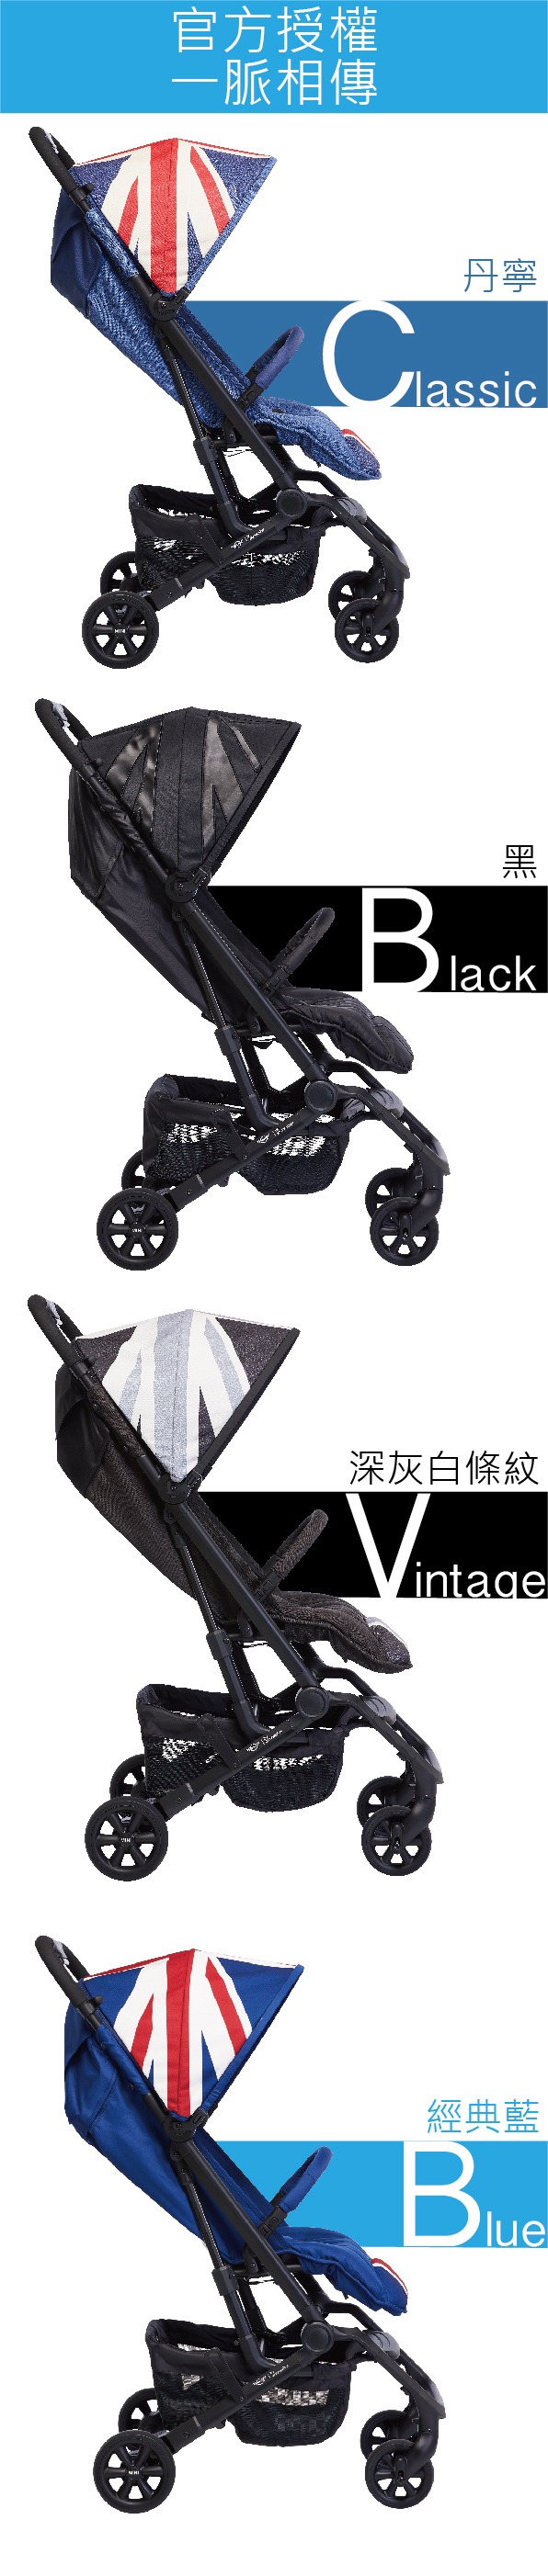 easywalker-mini-buggy-xs-info04